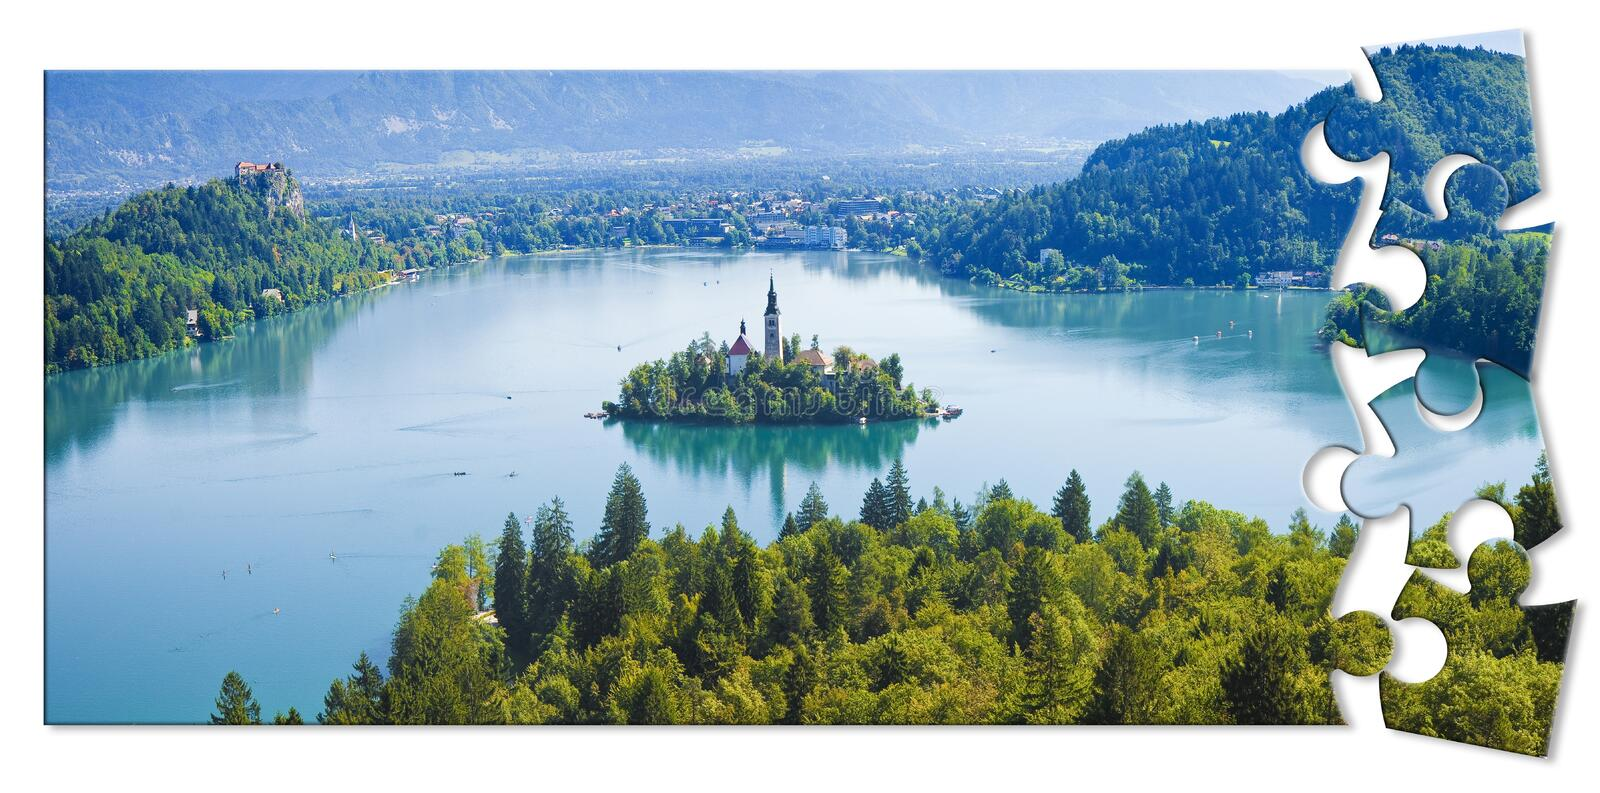 Planning a trip to Bled lake, the most famous lake in Slovenia with the island of the church Europe - Slovenia - Concept mage in stock illustration